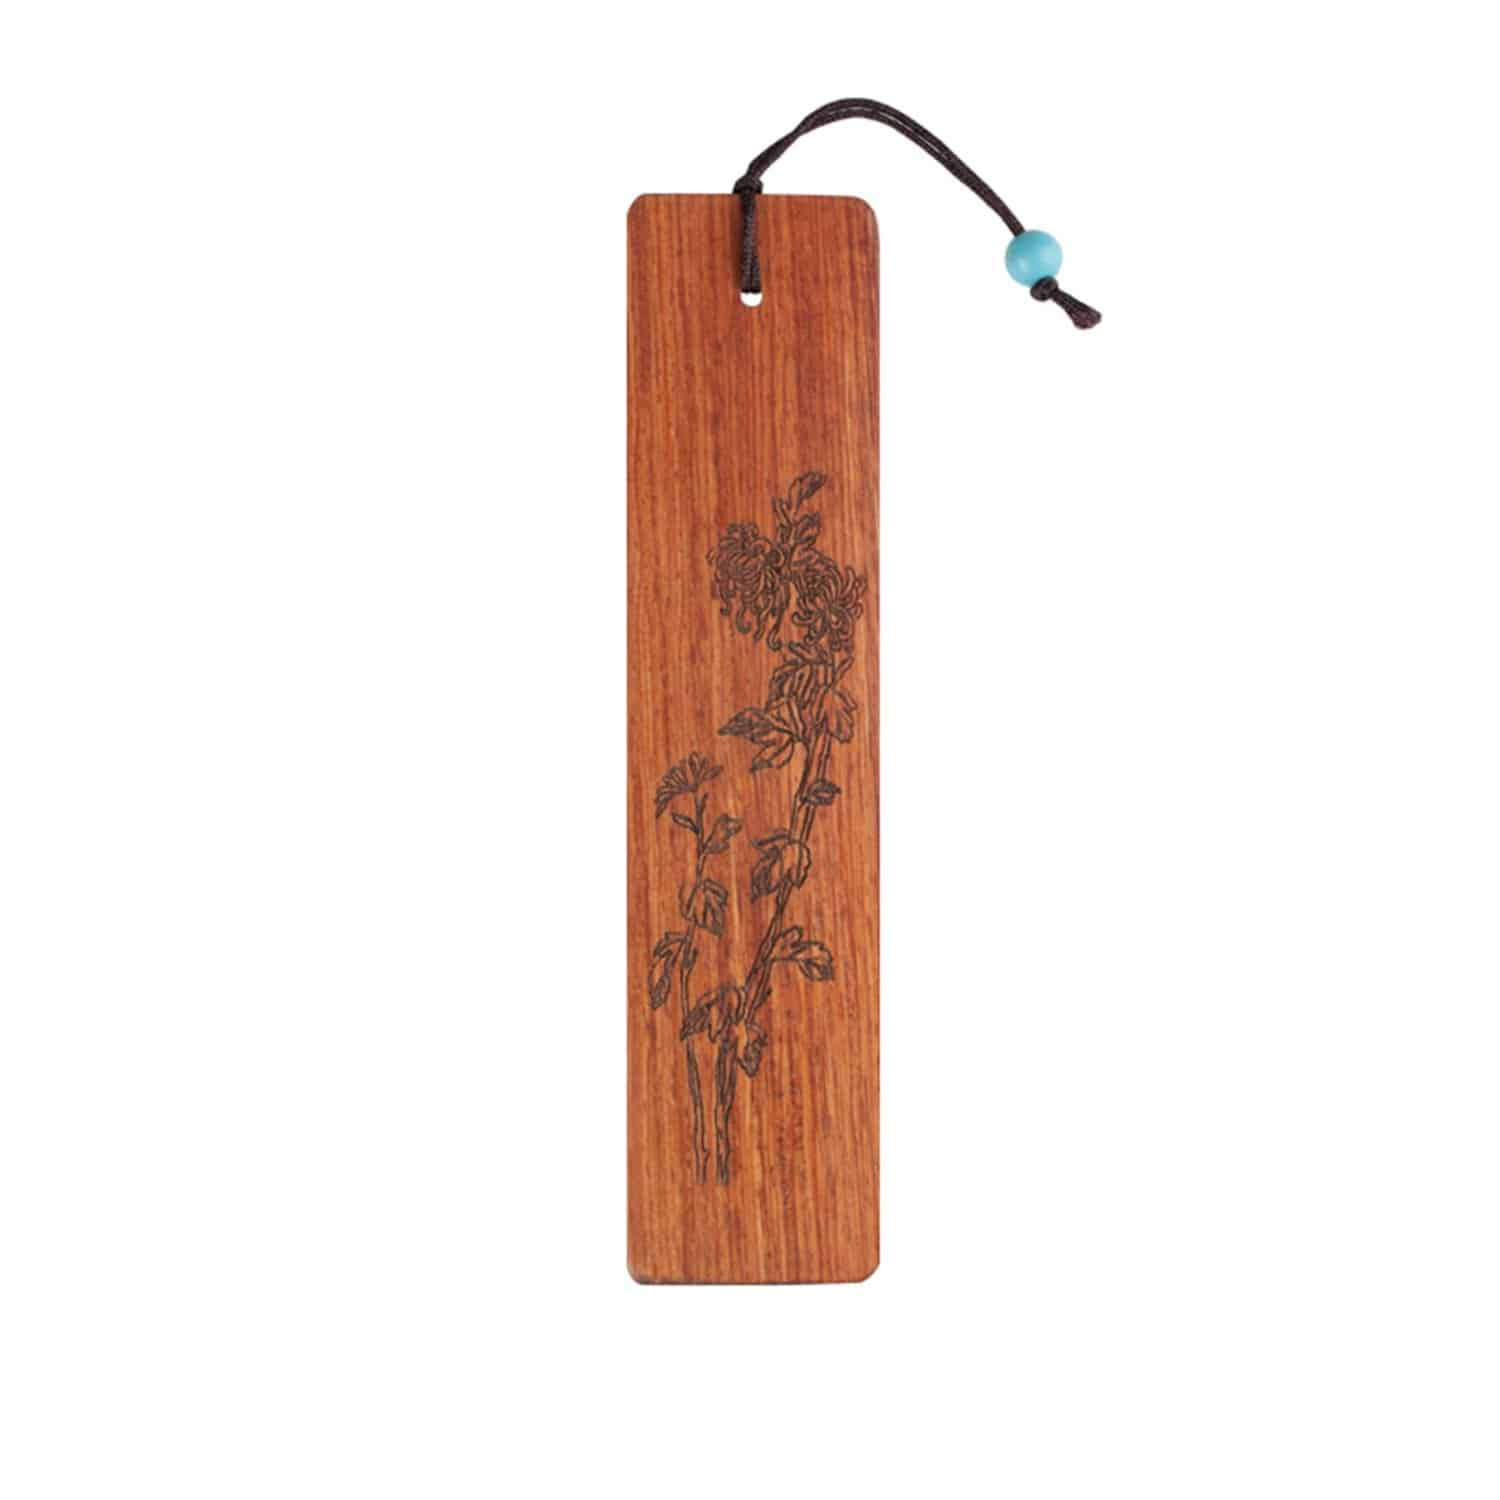 Olina Handmade Natural Wood Bookmark Chrysantemum Carving on Rosewood